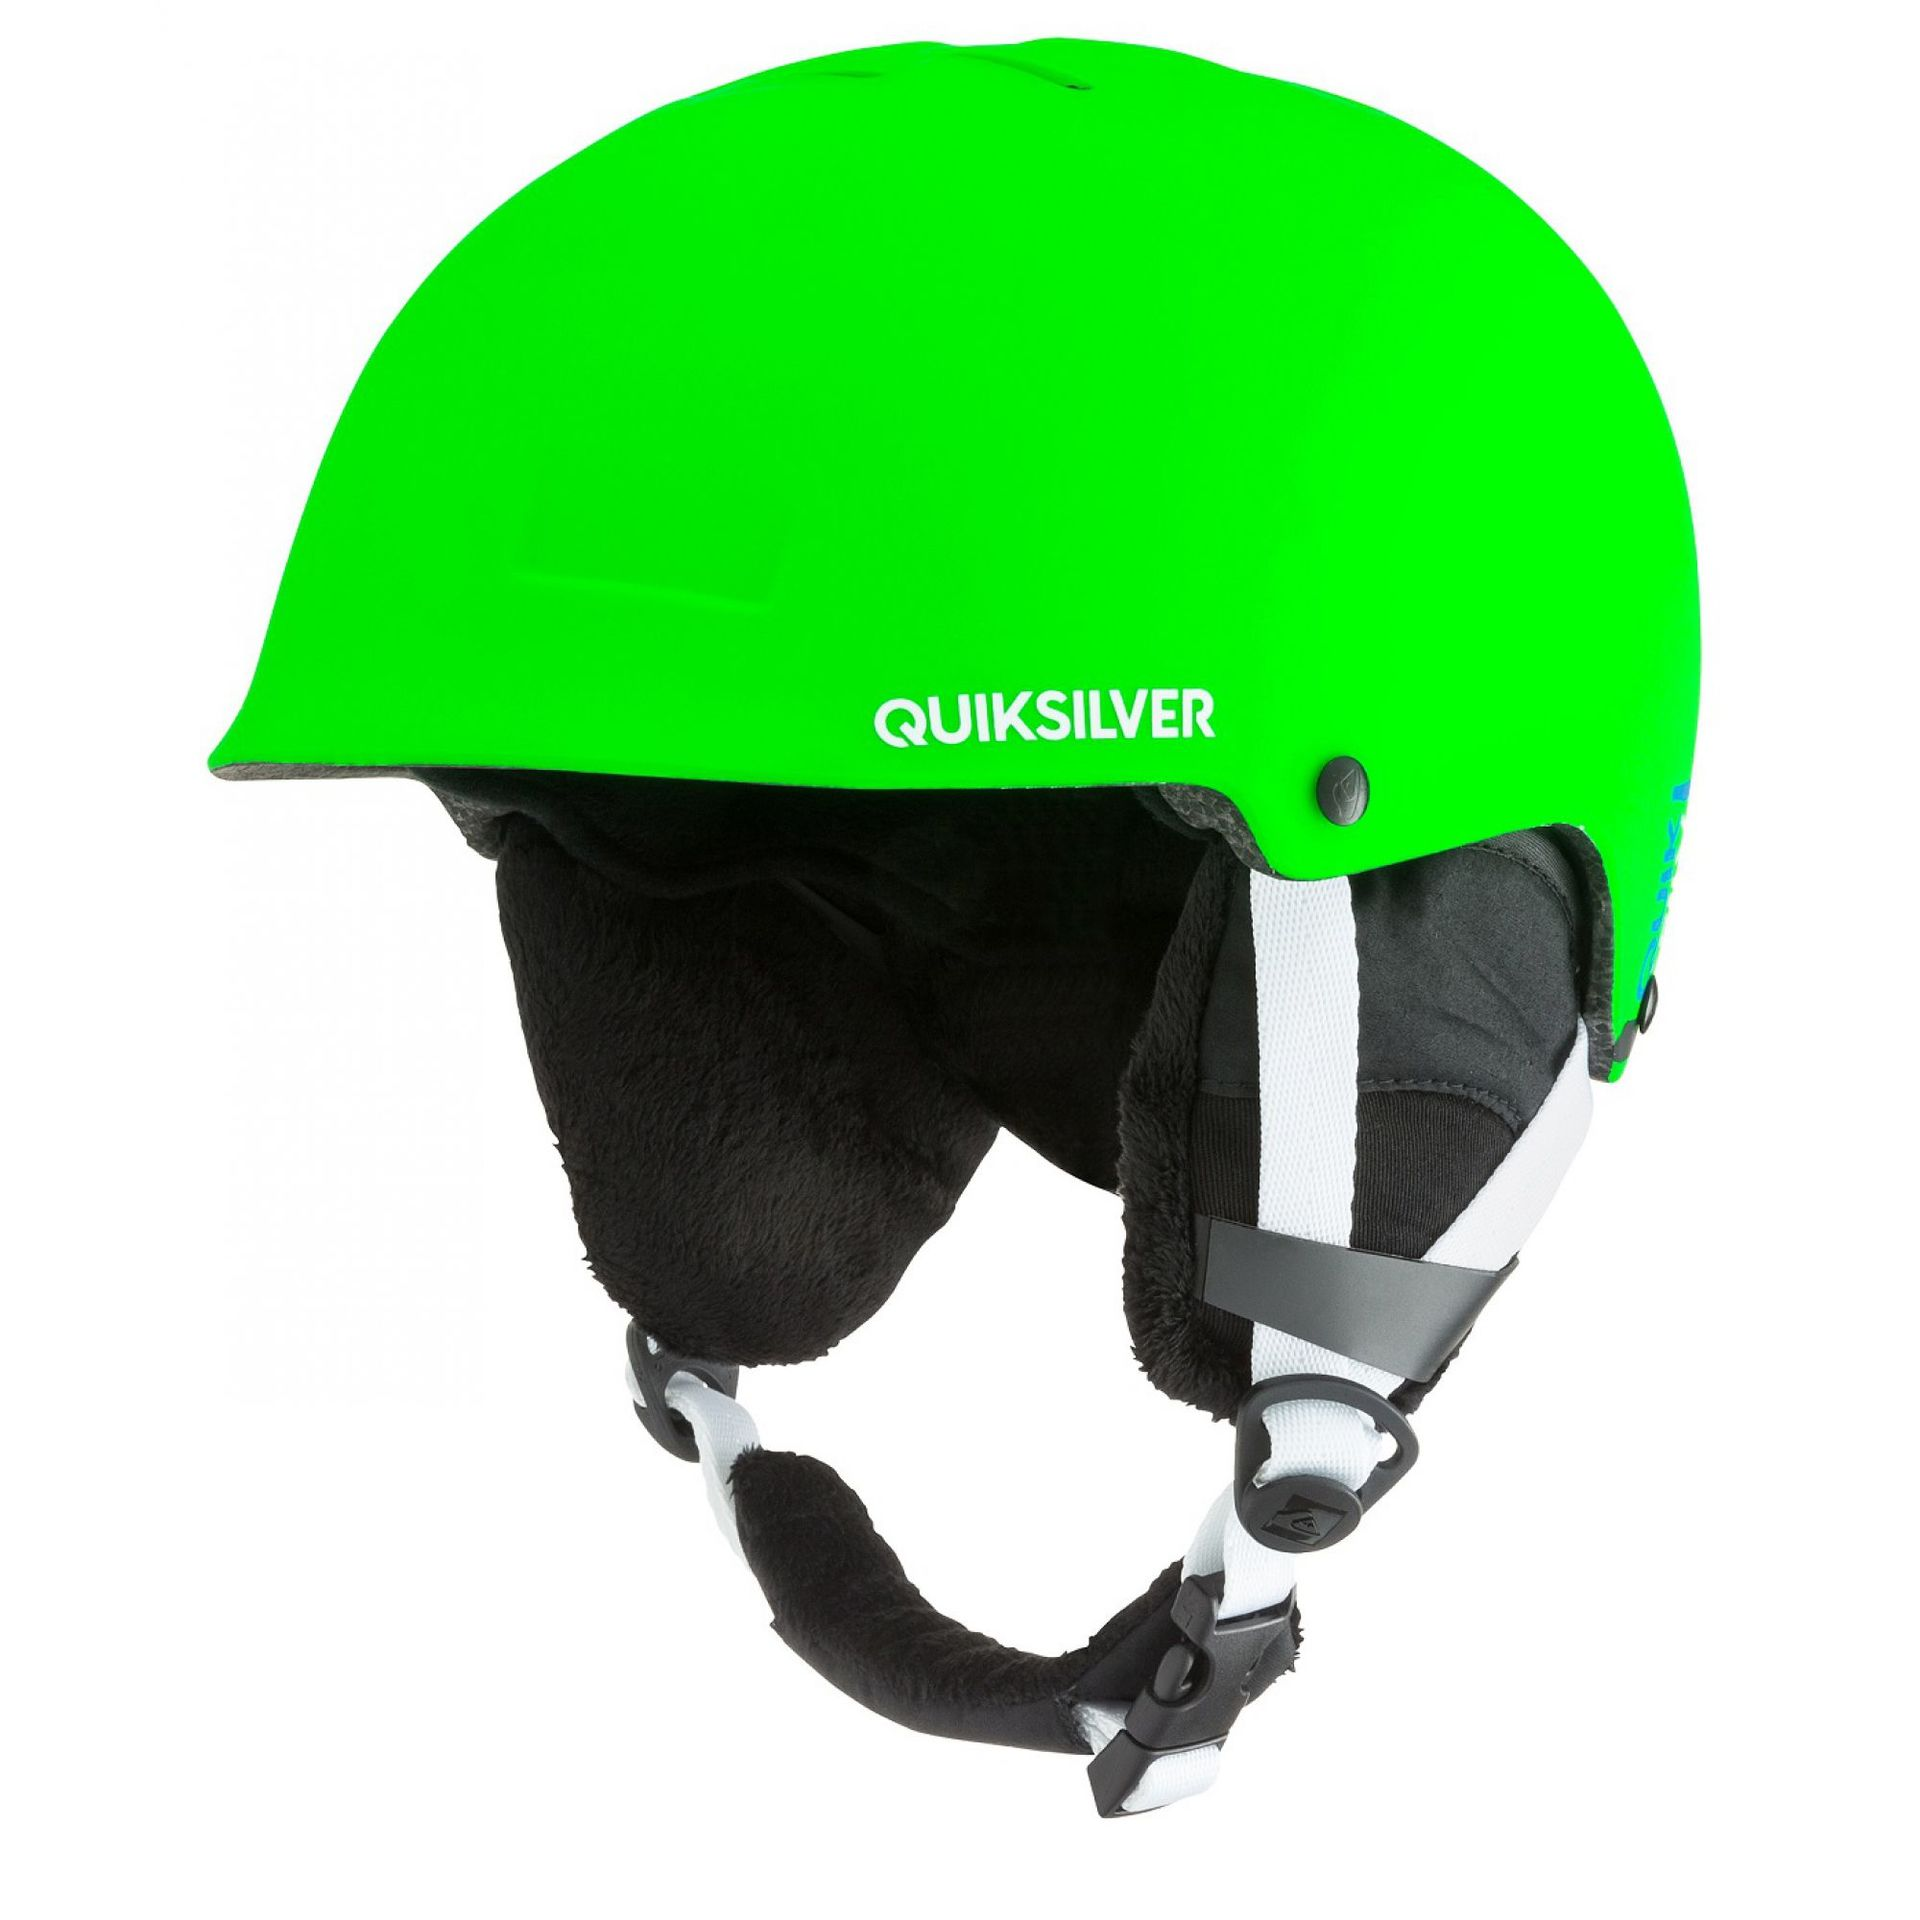 KASK QUIKSILVER EMPIRE ZIELONY